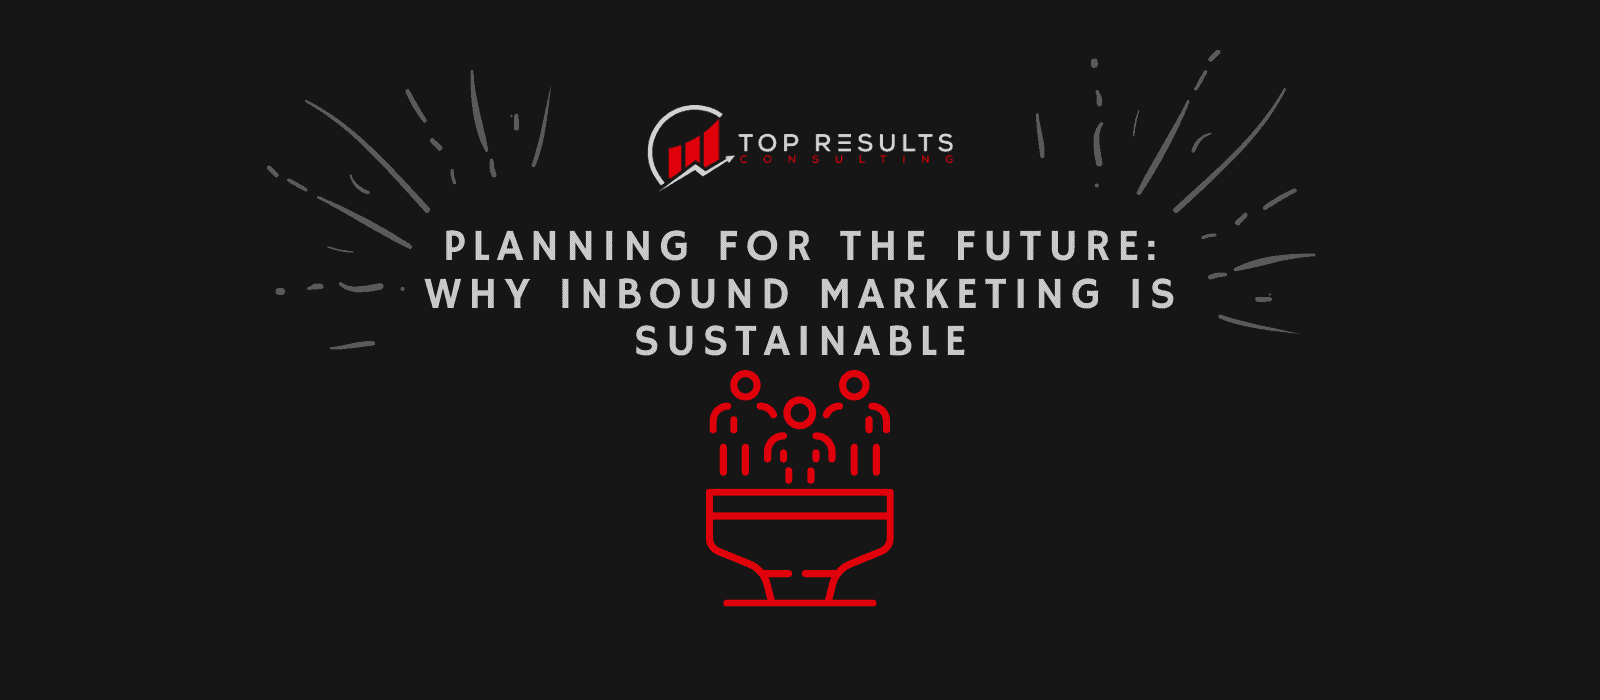 Why Inbound Marketing Is Sustainable